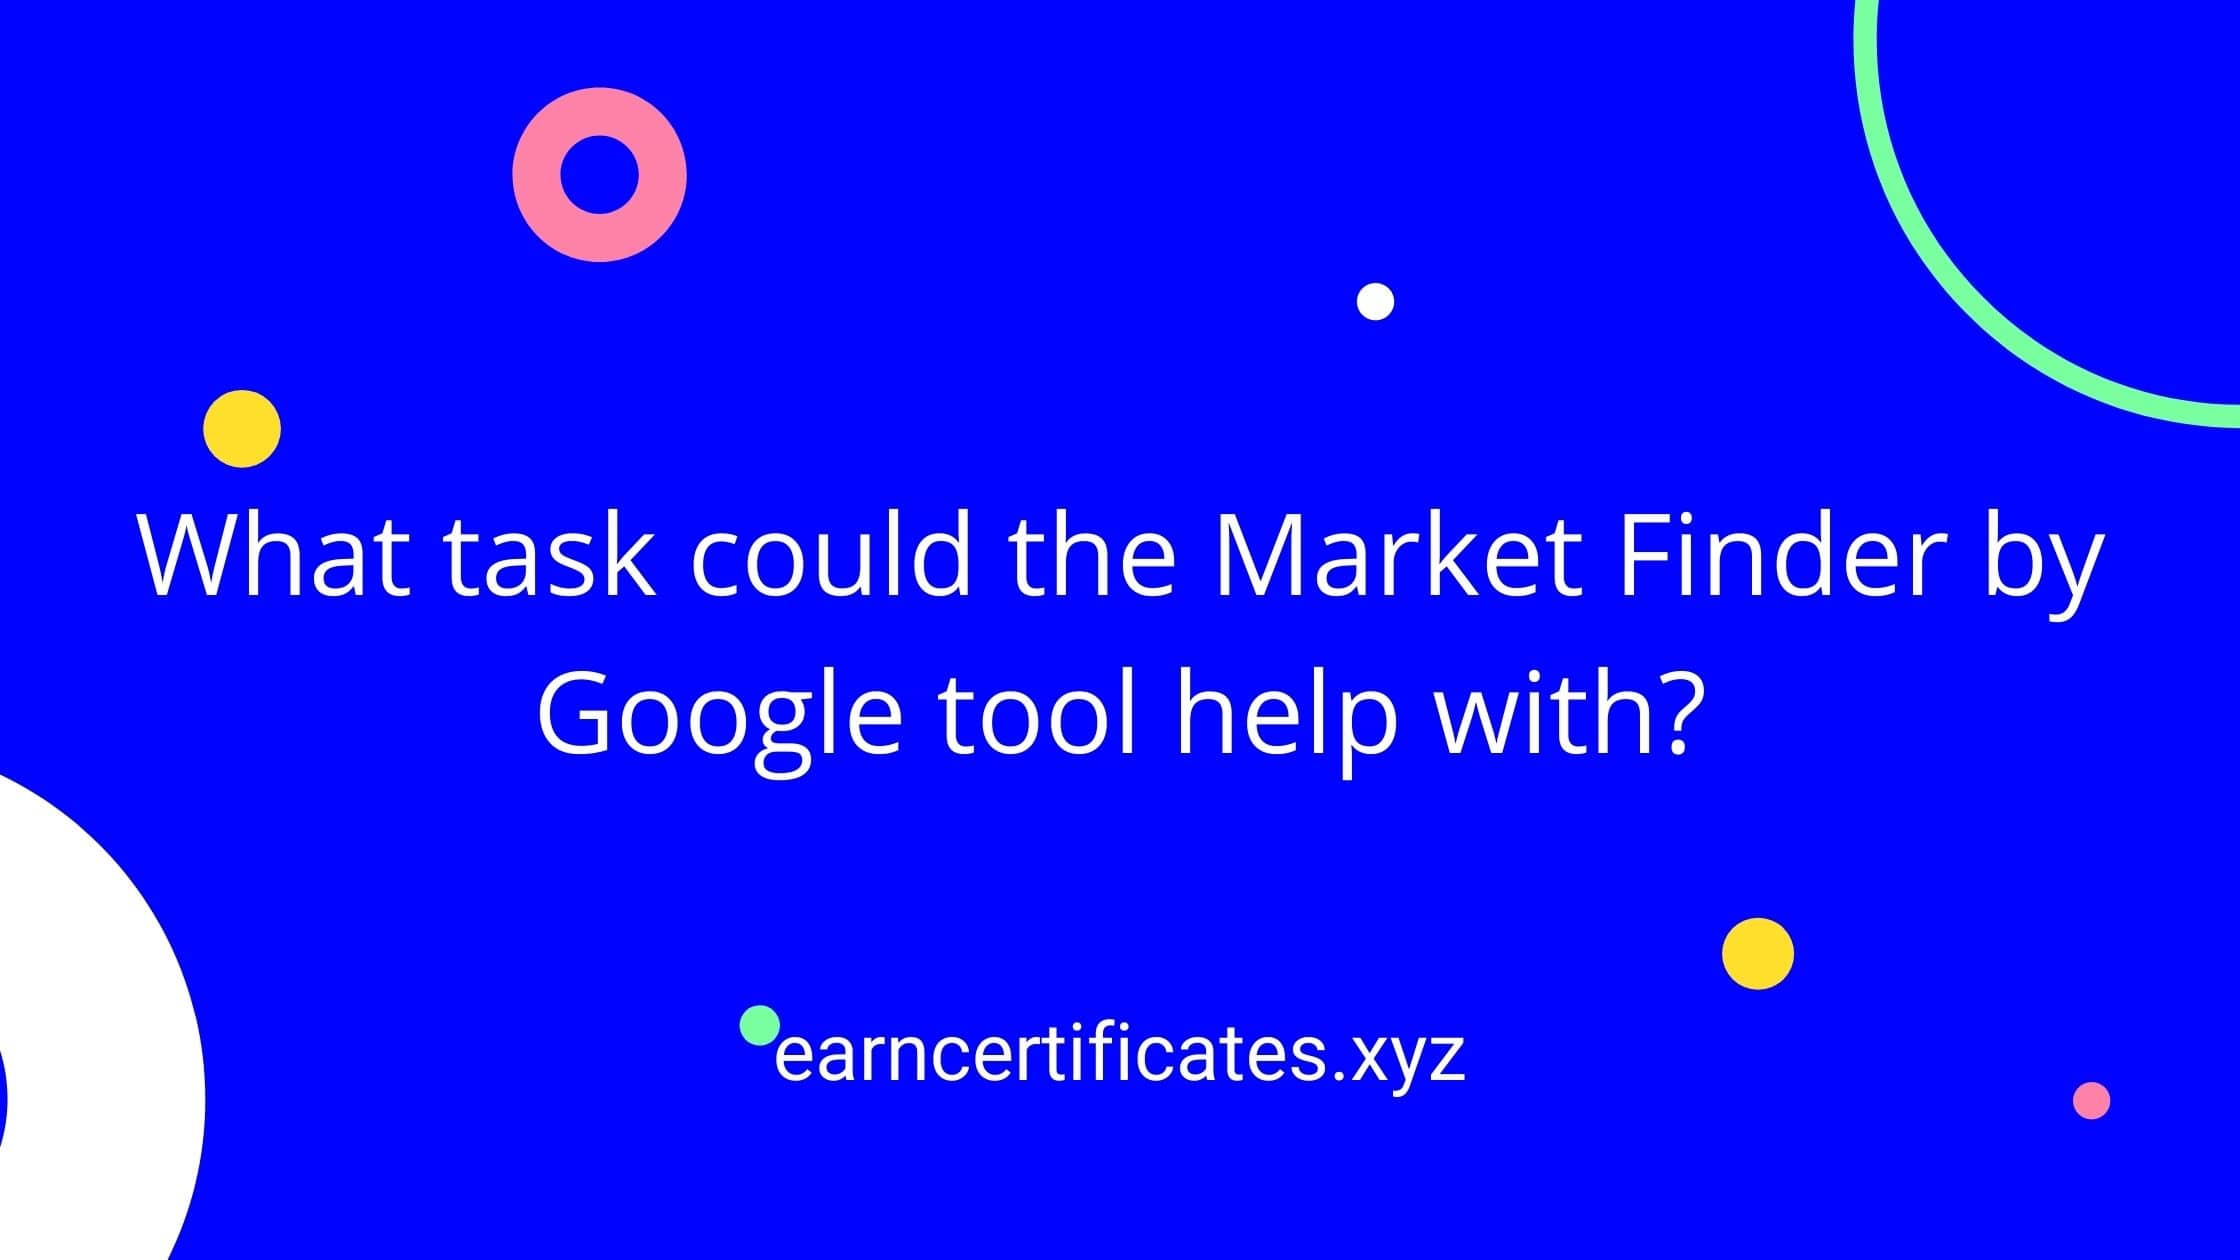 What task could the Market Finder by Google tool help with?